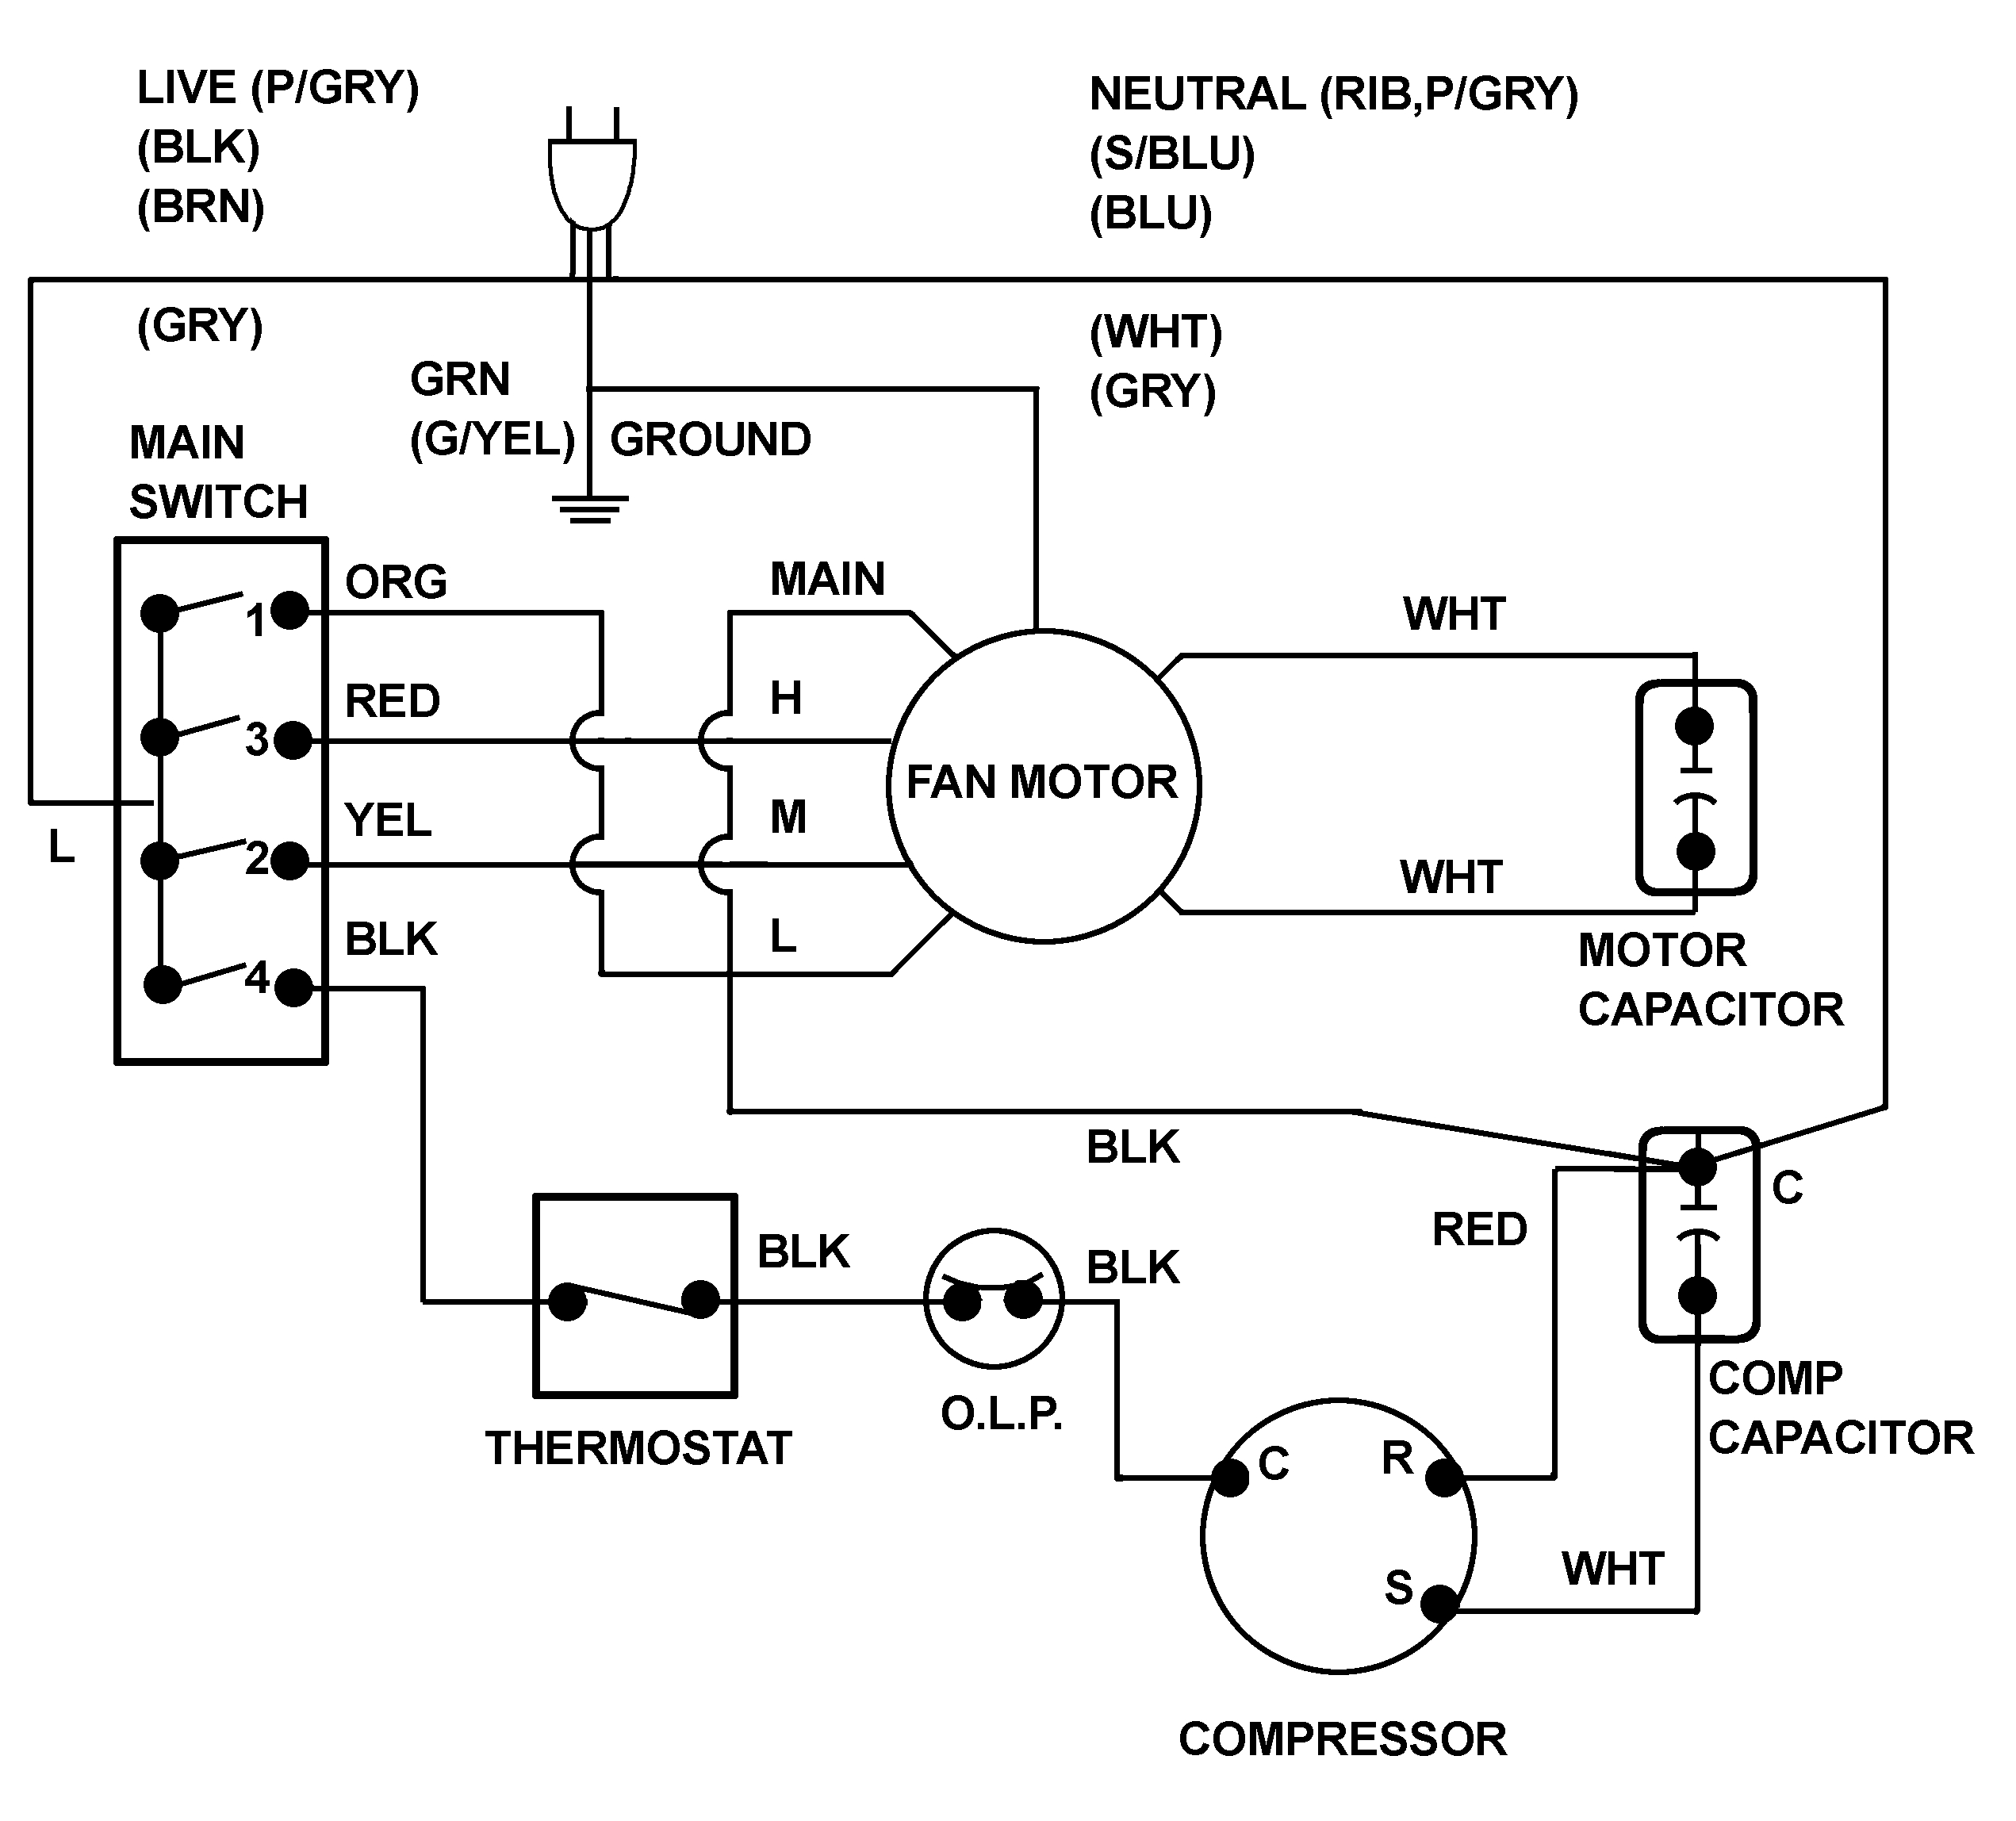 Wire Diagram For Ac Unit - Wiring Diagram Blog - Air Conditioner Wiring Diagram